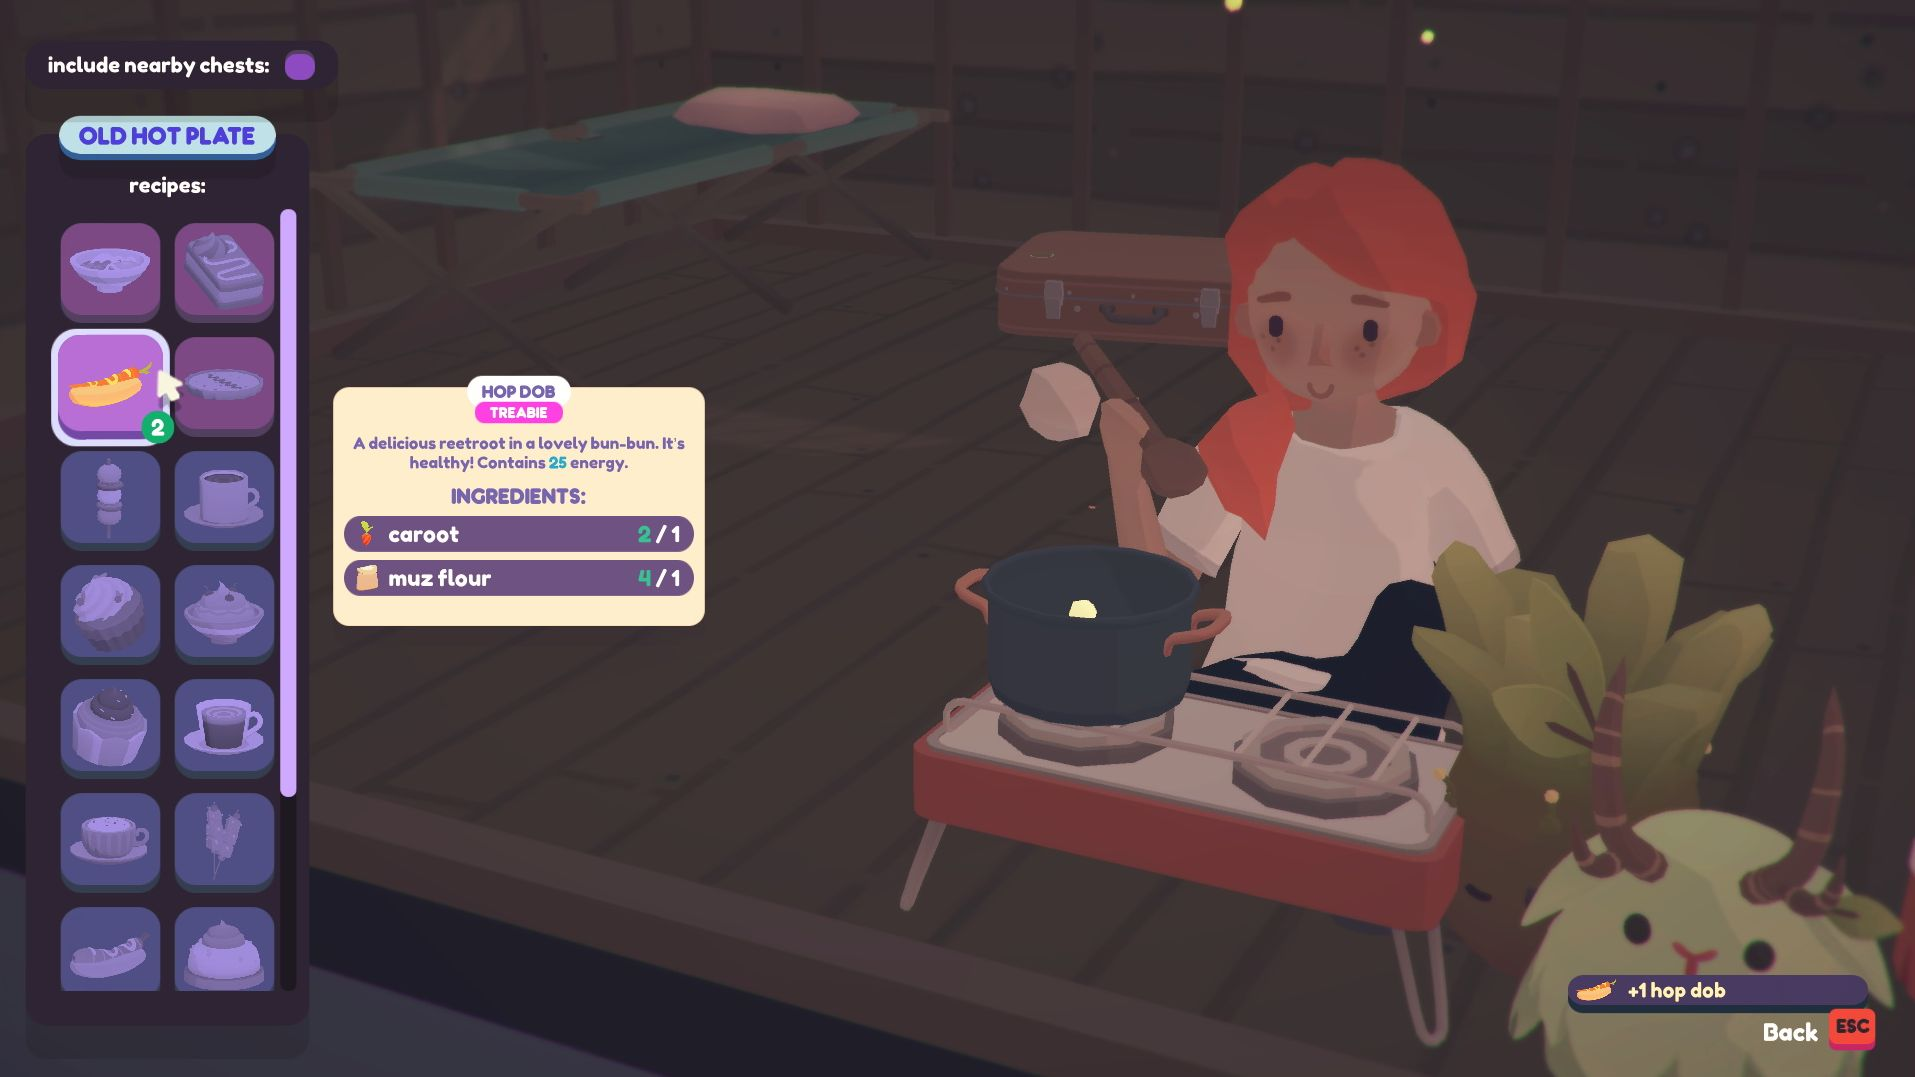 A screenshot of the player character ready to cook food at their little hob